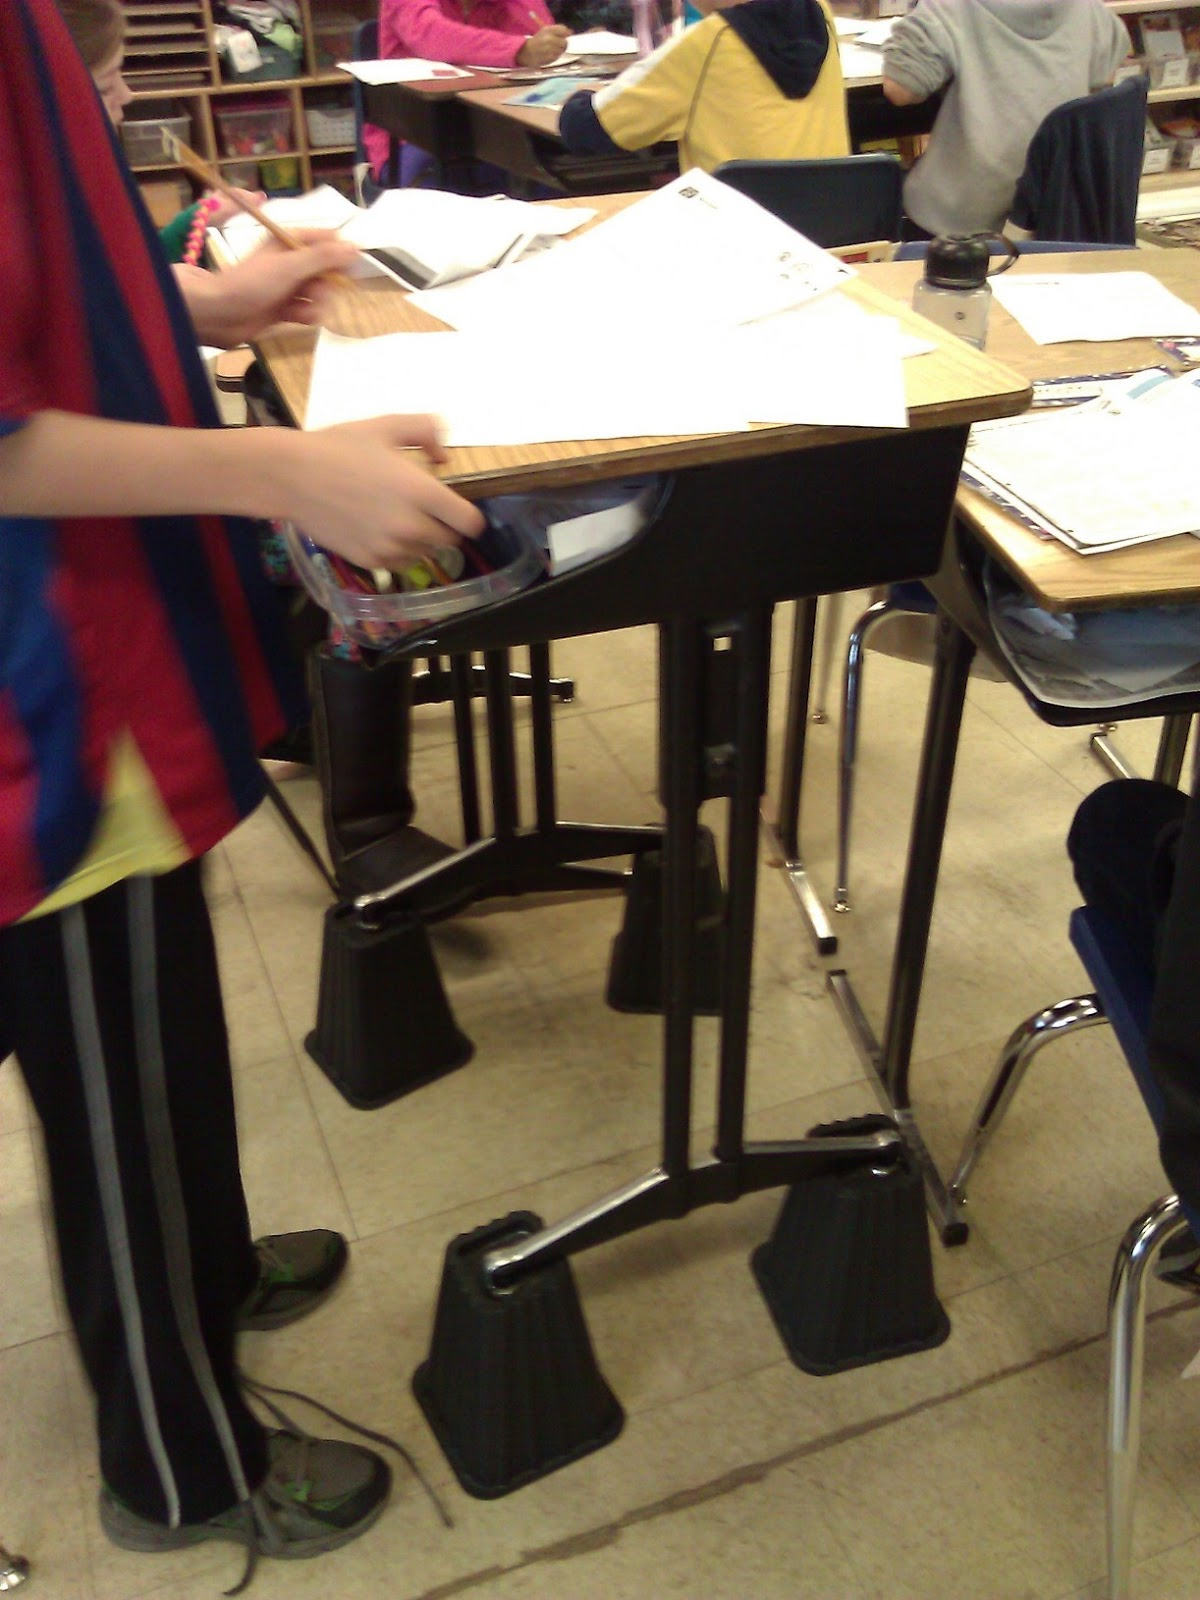 Organizing Chaos in the Classroom Alternative Seating